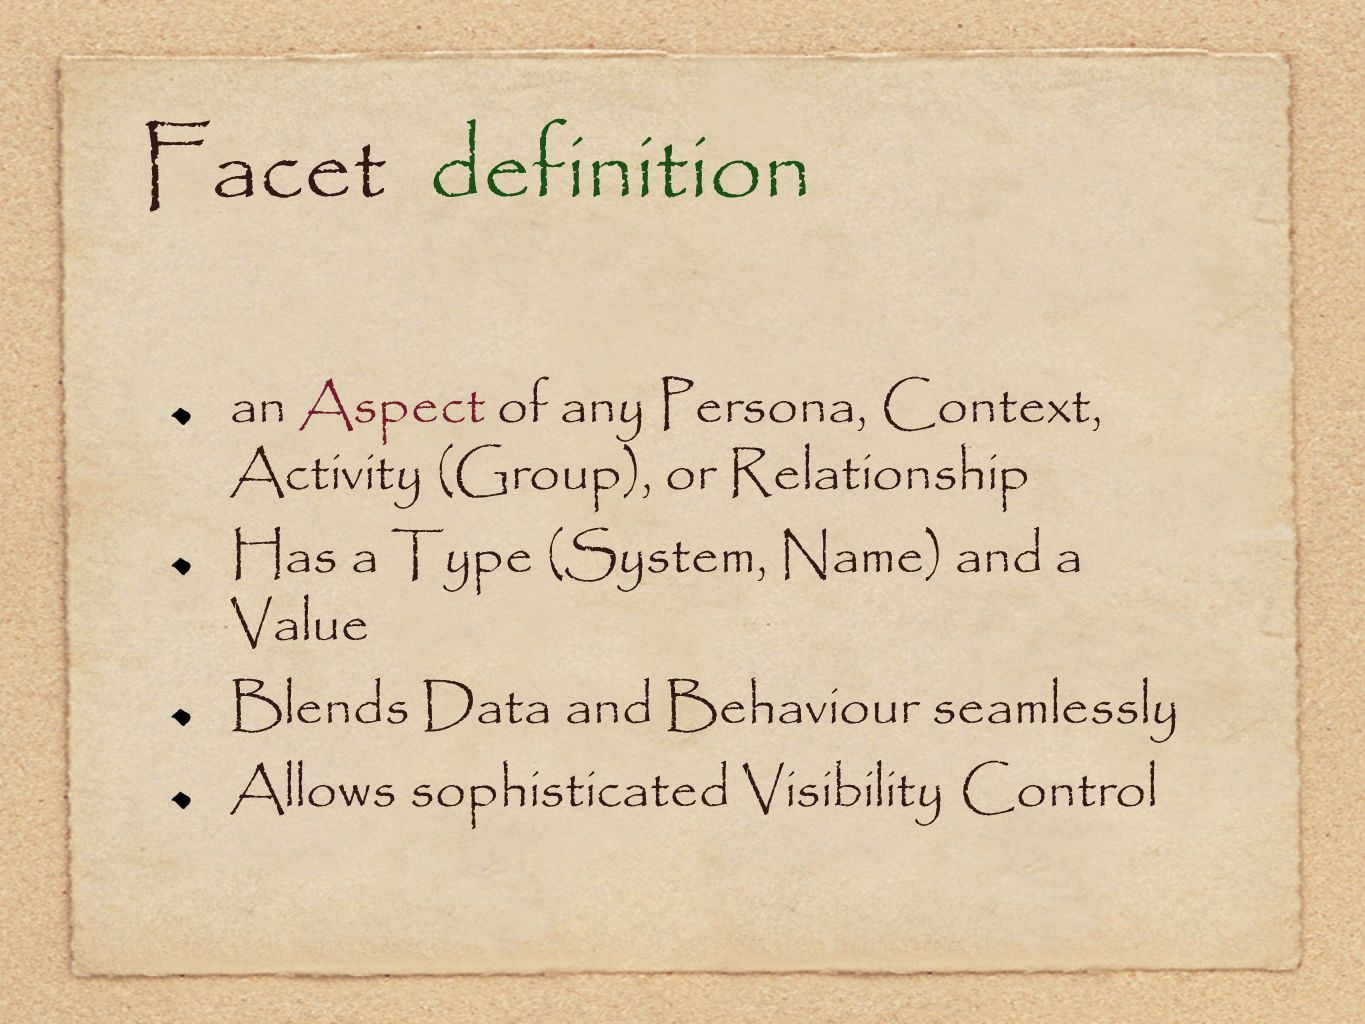 Facet definition an Aspect of any Persona, Context, Activity (Group), or Relationship. Has a Type (System, Name) and a Value.